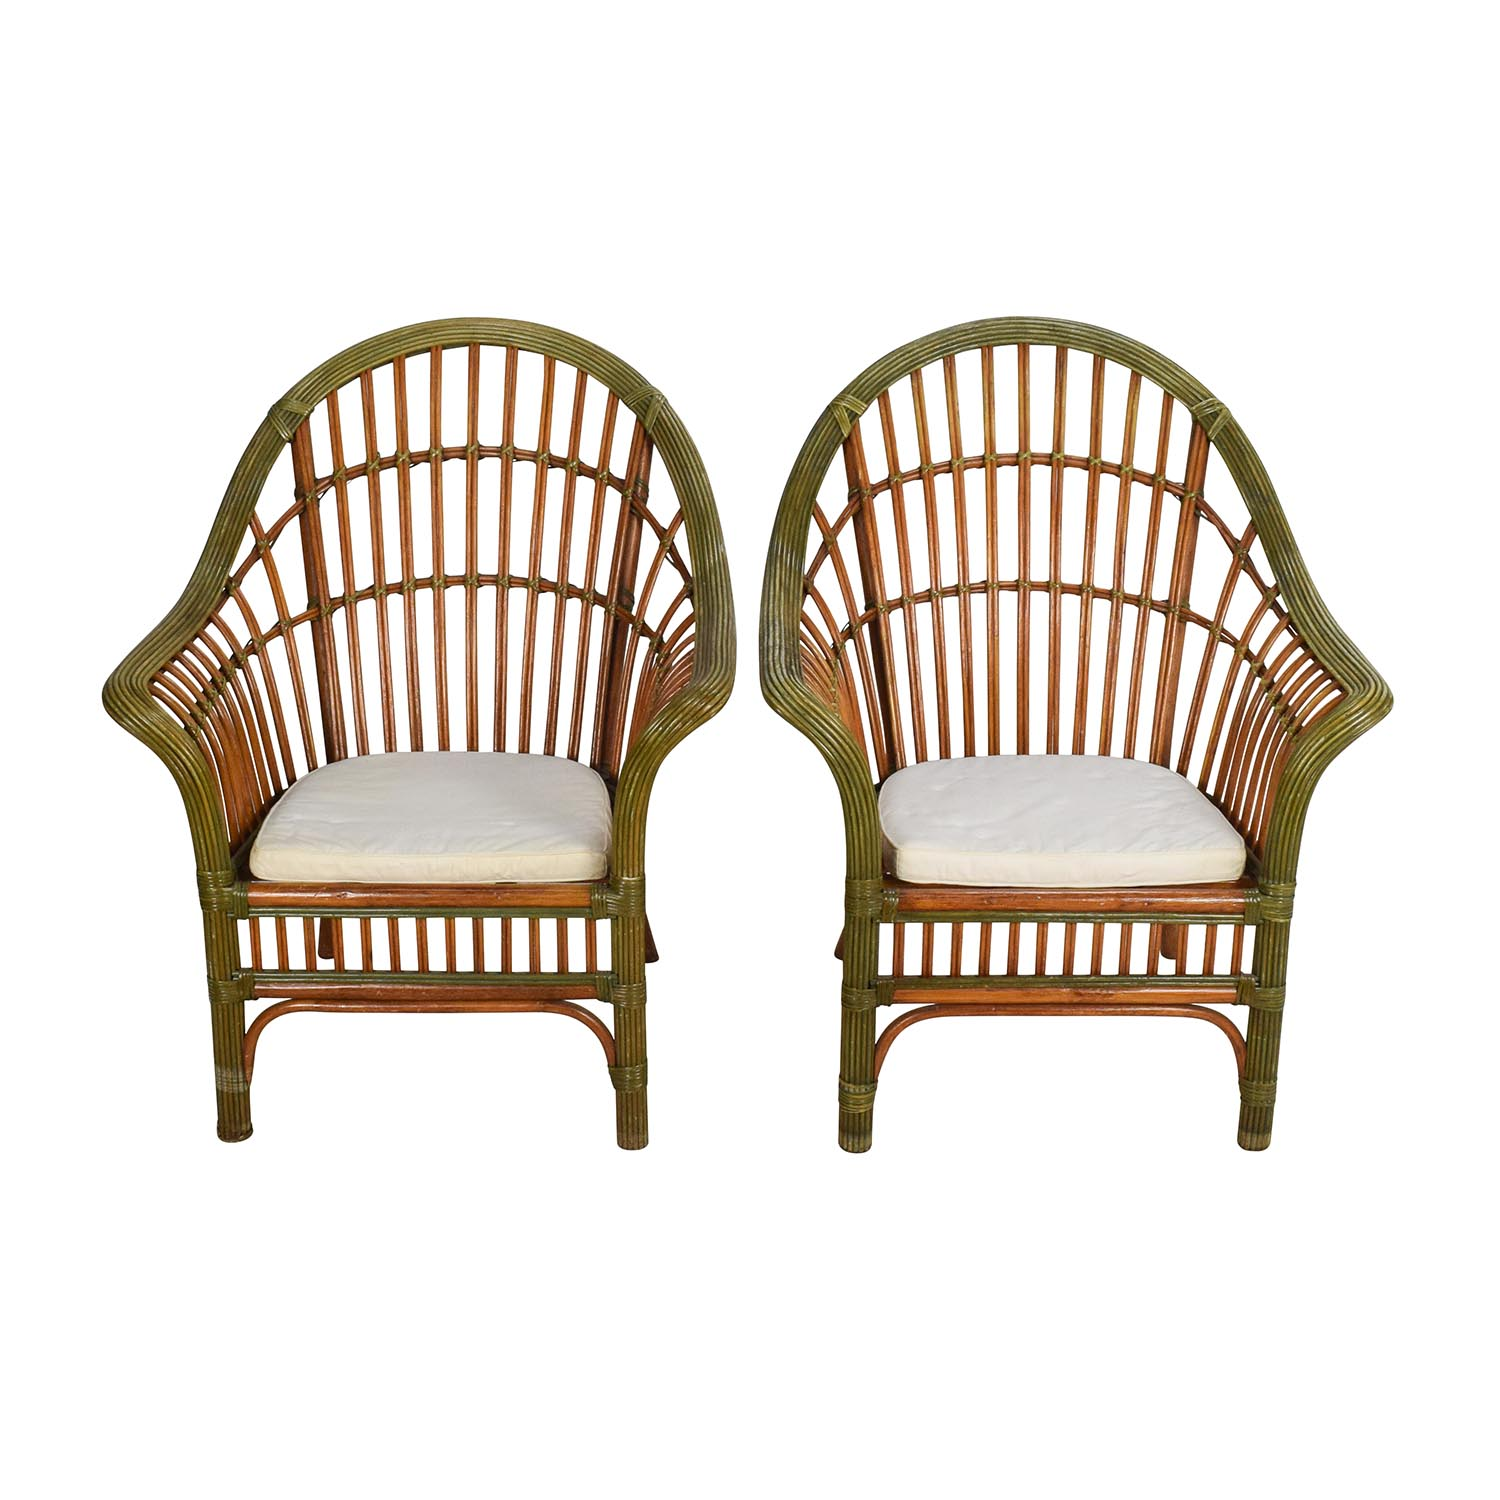 Pair Of Wicker Arm Chairs With Cushions second hand